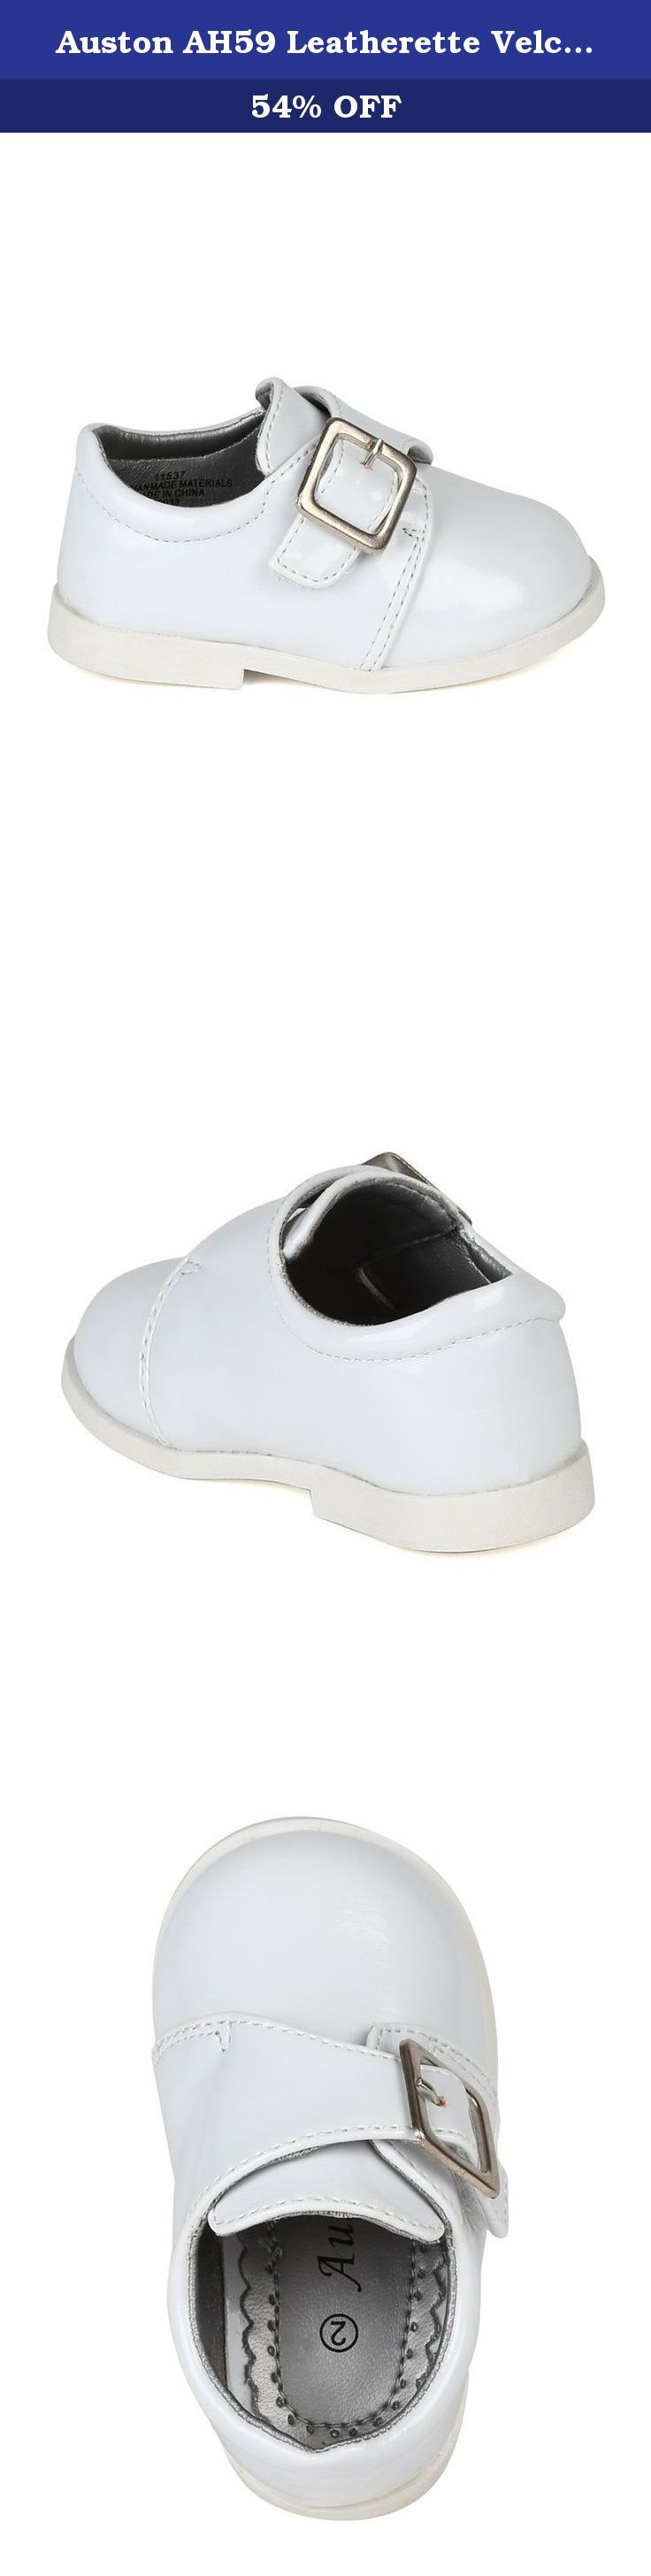 Auston AH59 Leatherette Velcro Buckle Strap Dress Church Shoe (Infant / Baby Boy) - White (Size: Toddler 7). These stylish dress shoes are the perfect compliment to your little man's handsome look! Designed with leatherette upper, vecro strap on vamp for secure fit, slip on for easy in and out, completed with extra padded insole for all day comfort and play!.